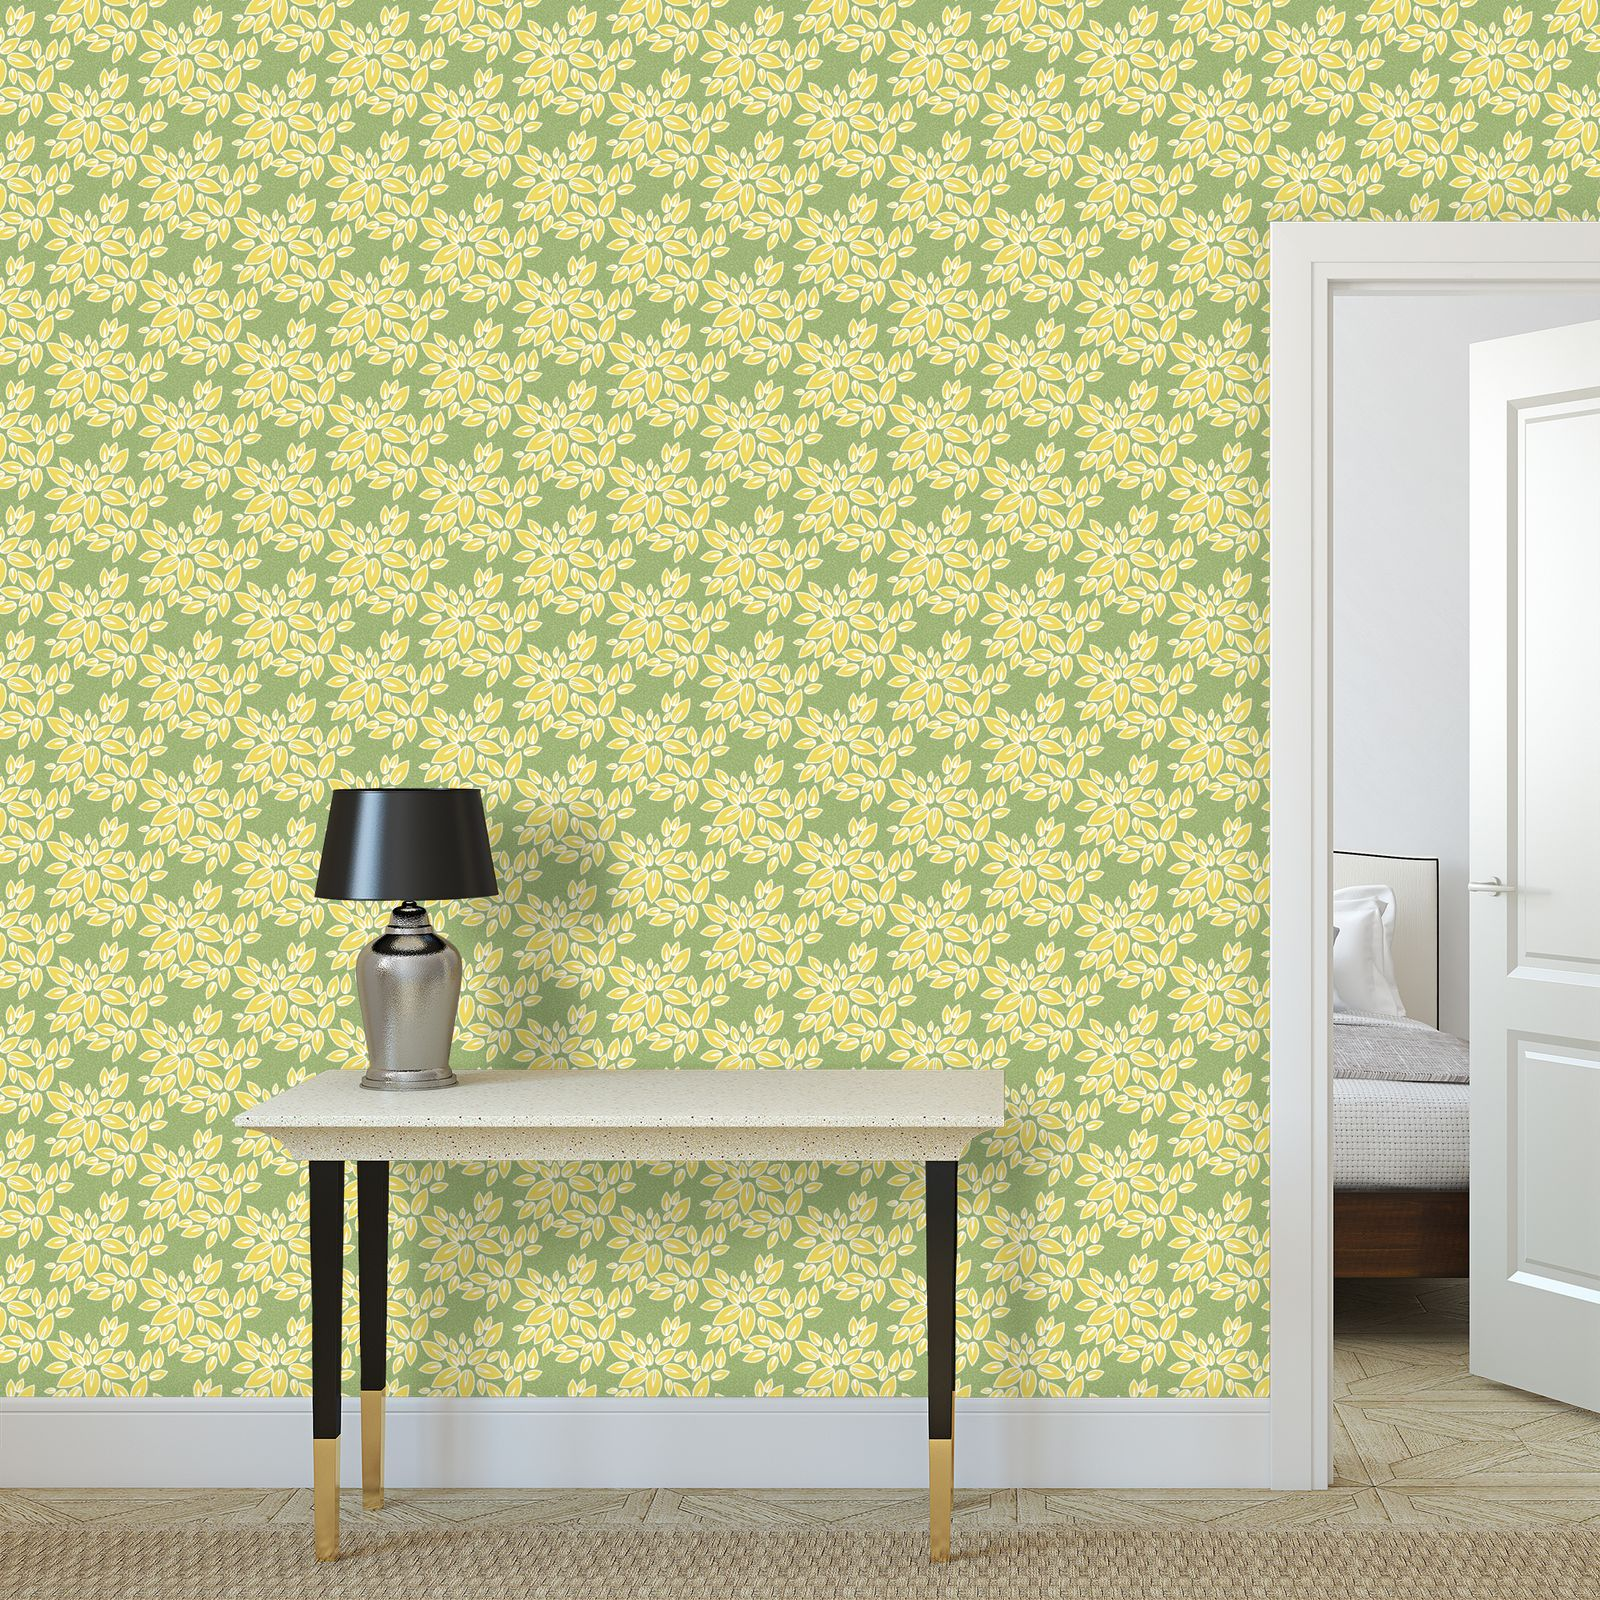 Leaf lace - Wallpaper Rolls - floral, yellow green leaves, lime, nature, summer gift